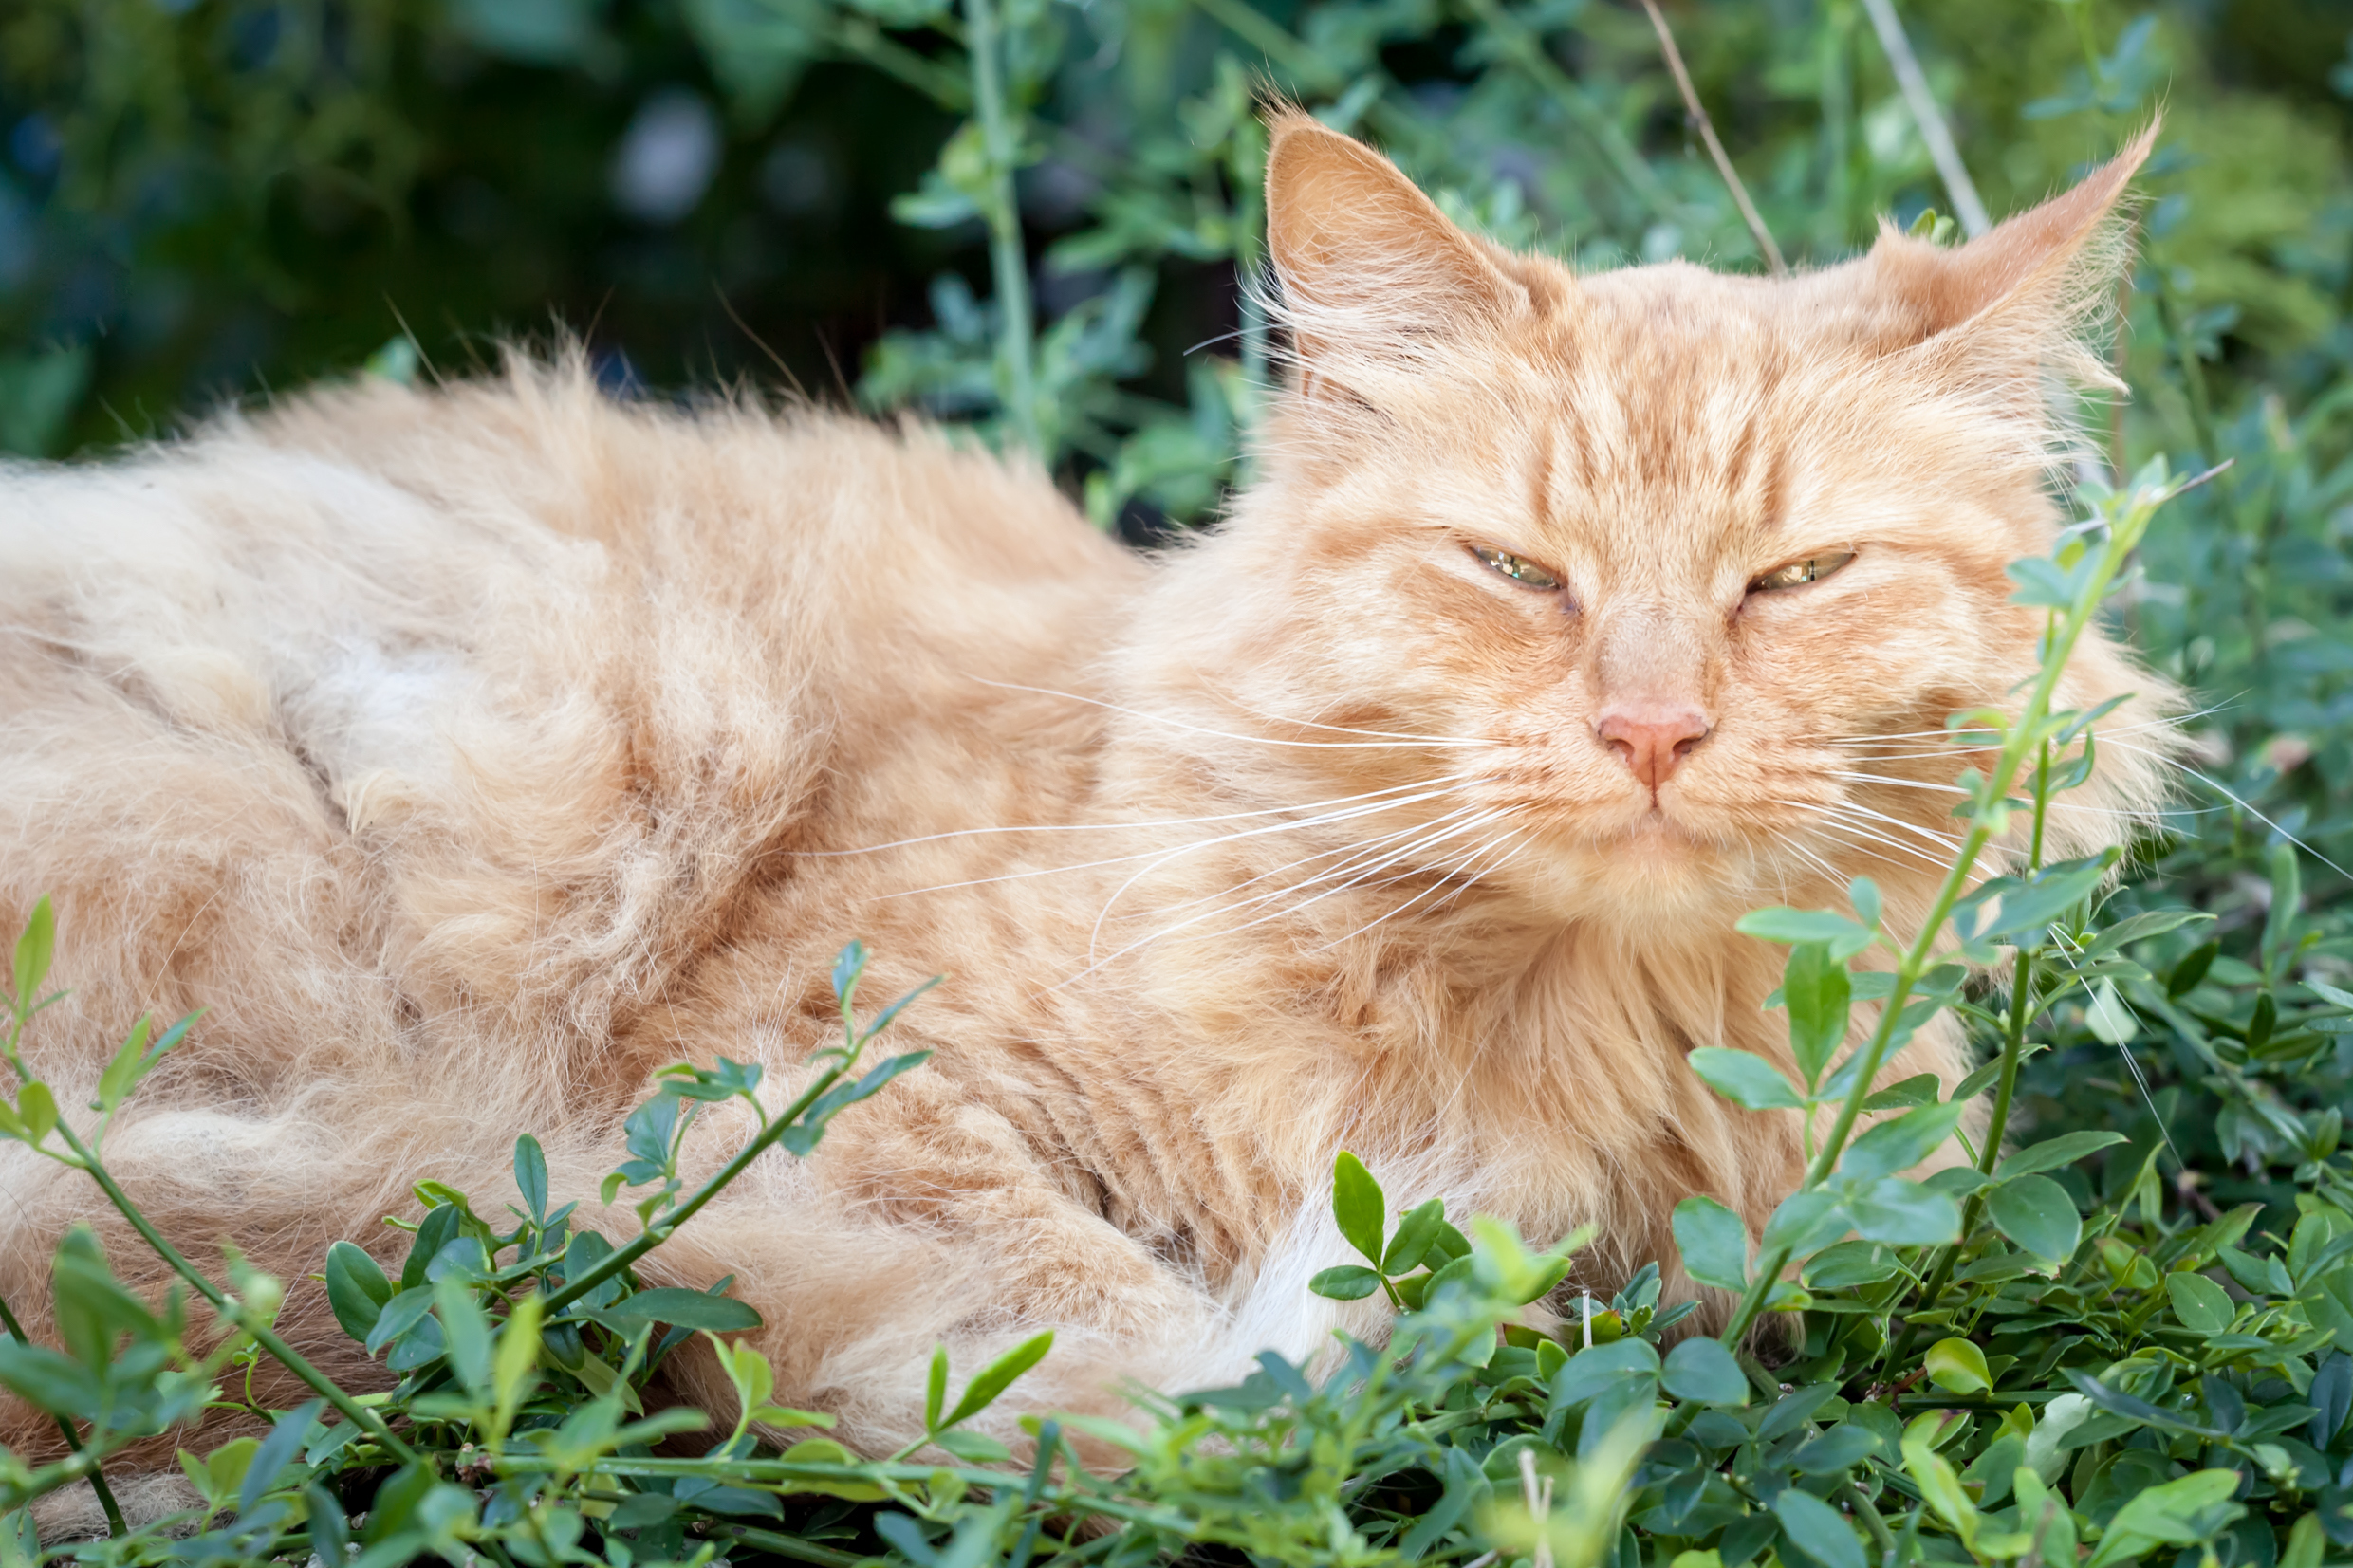 Cool An Cat Dying Cat Has Bad Breath Treatment Cat Has Bad Breath After Tooth Extraction Signs houzz-03 Cat Has Bad Breath